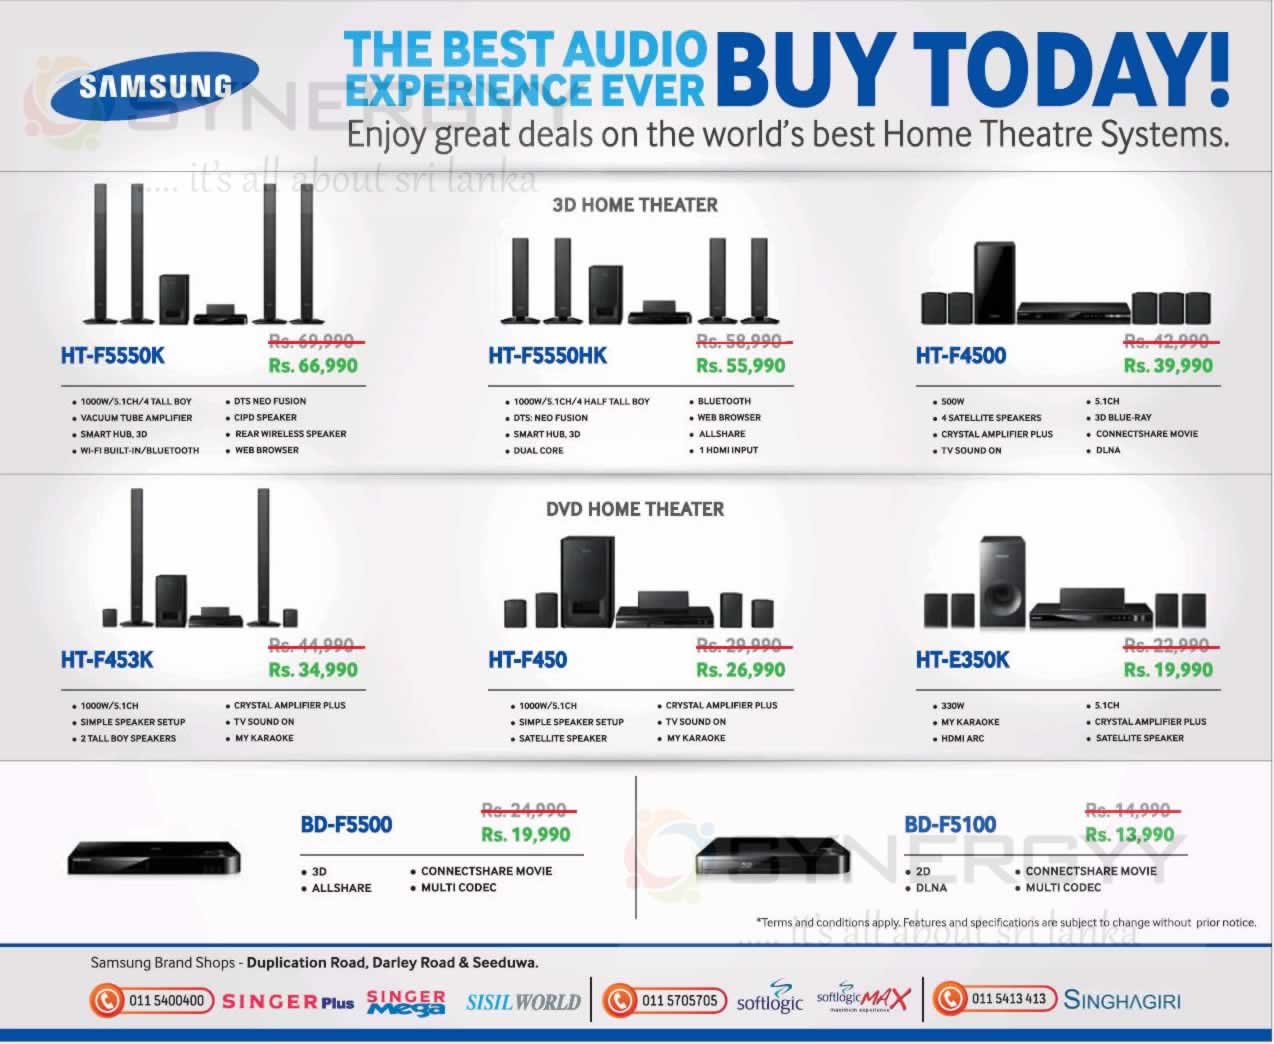 samsung home theater 2013. samsung home theater systems discount promotion 2013